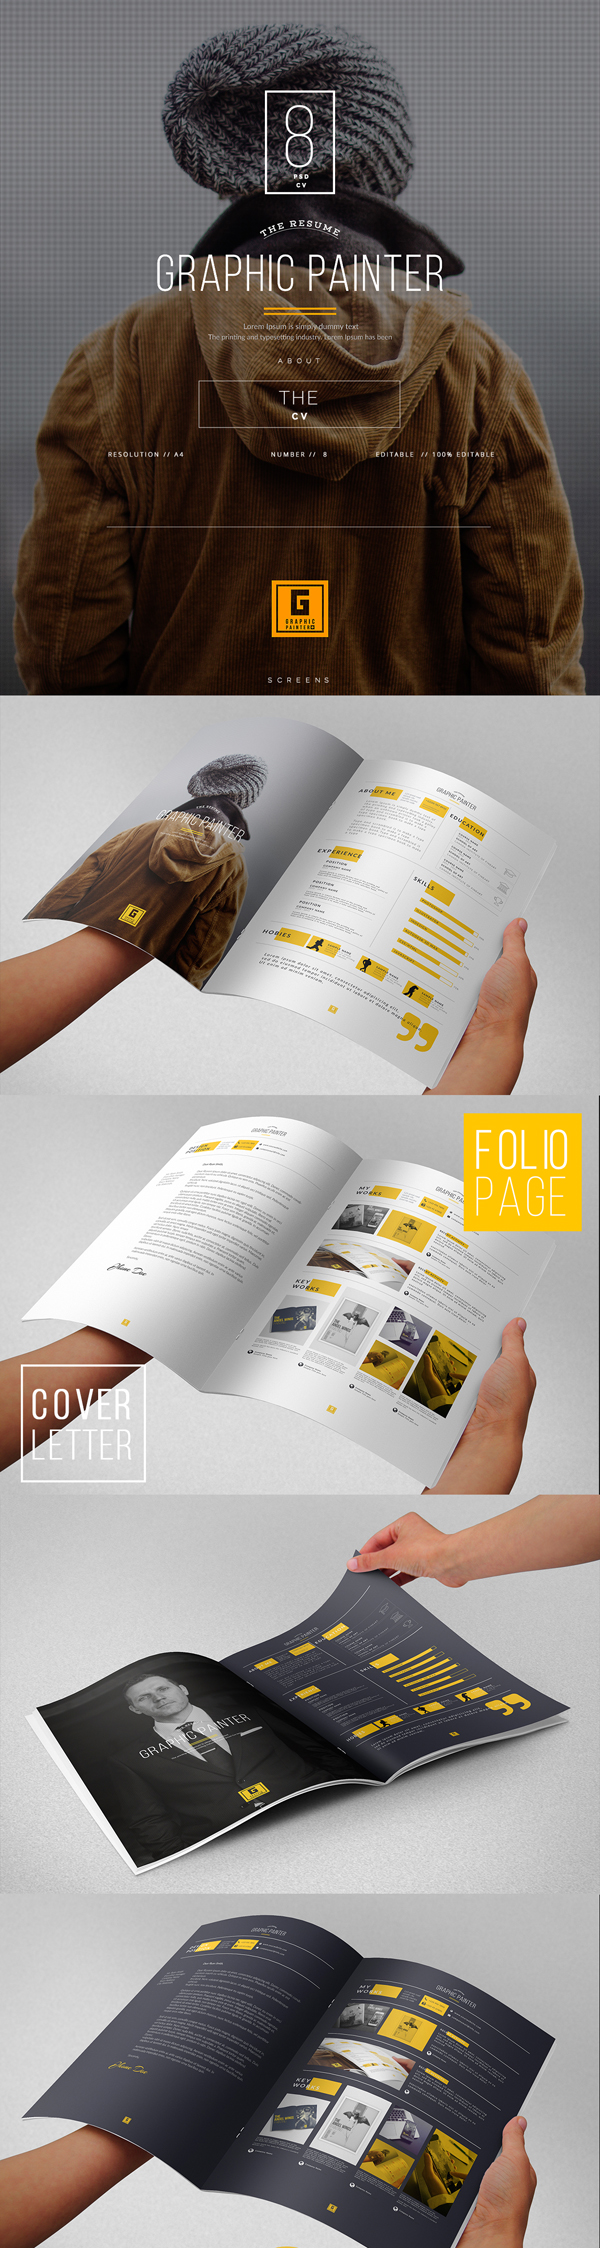 free psd files, psd files download, psd graphics